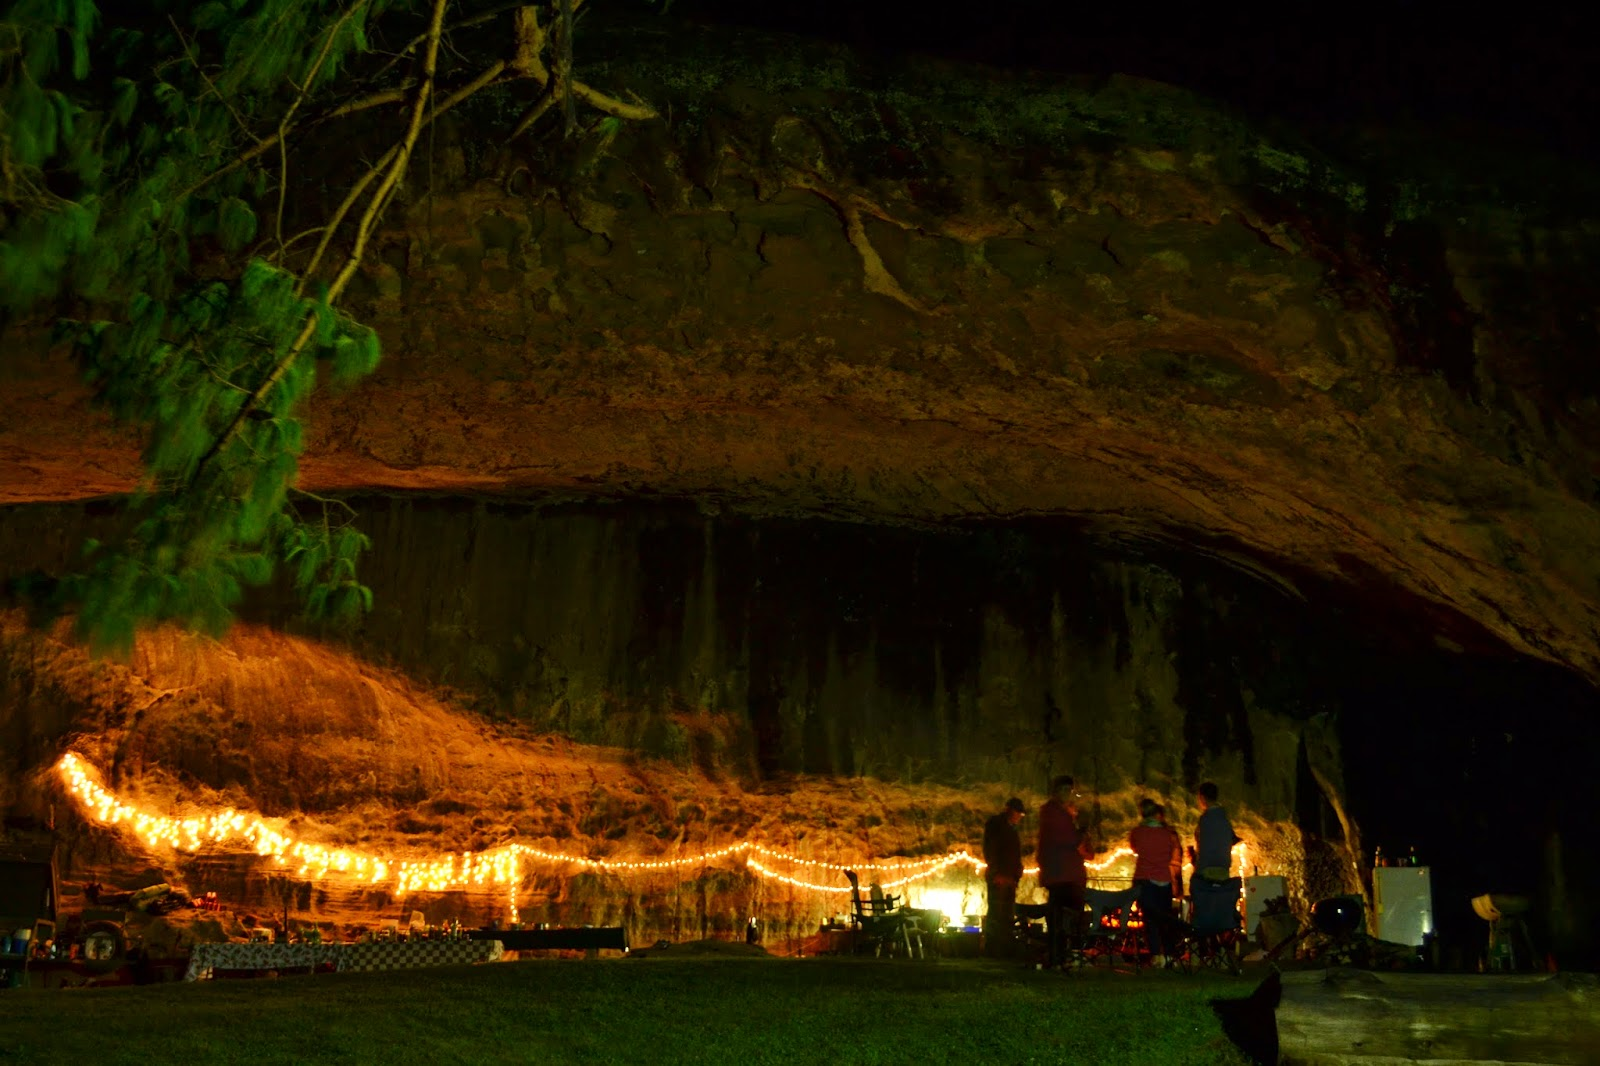 Night picture of people camping in big cave with Christmas Lights